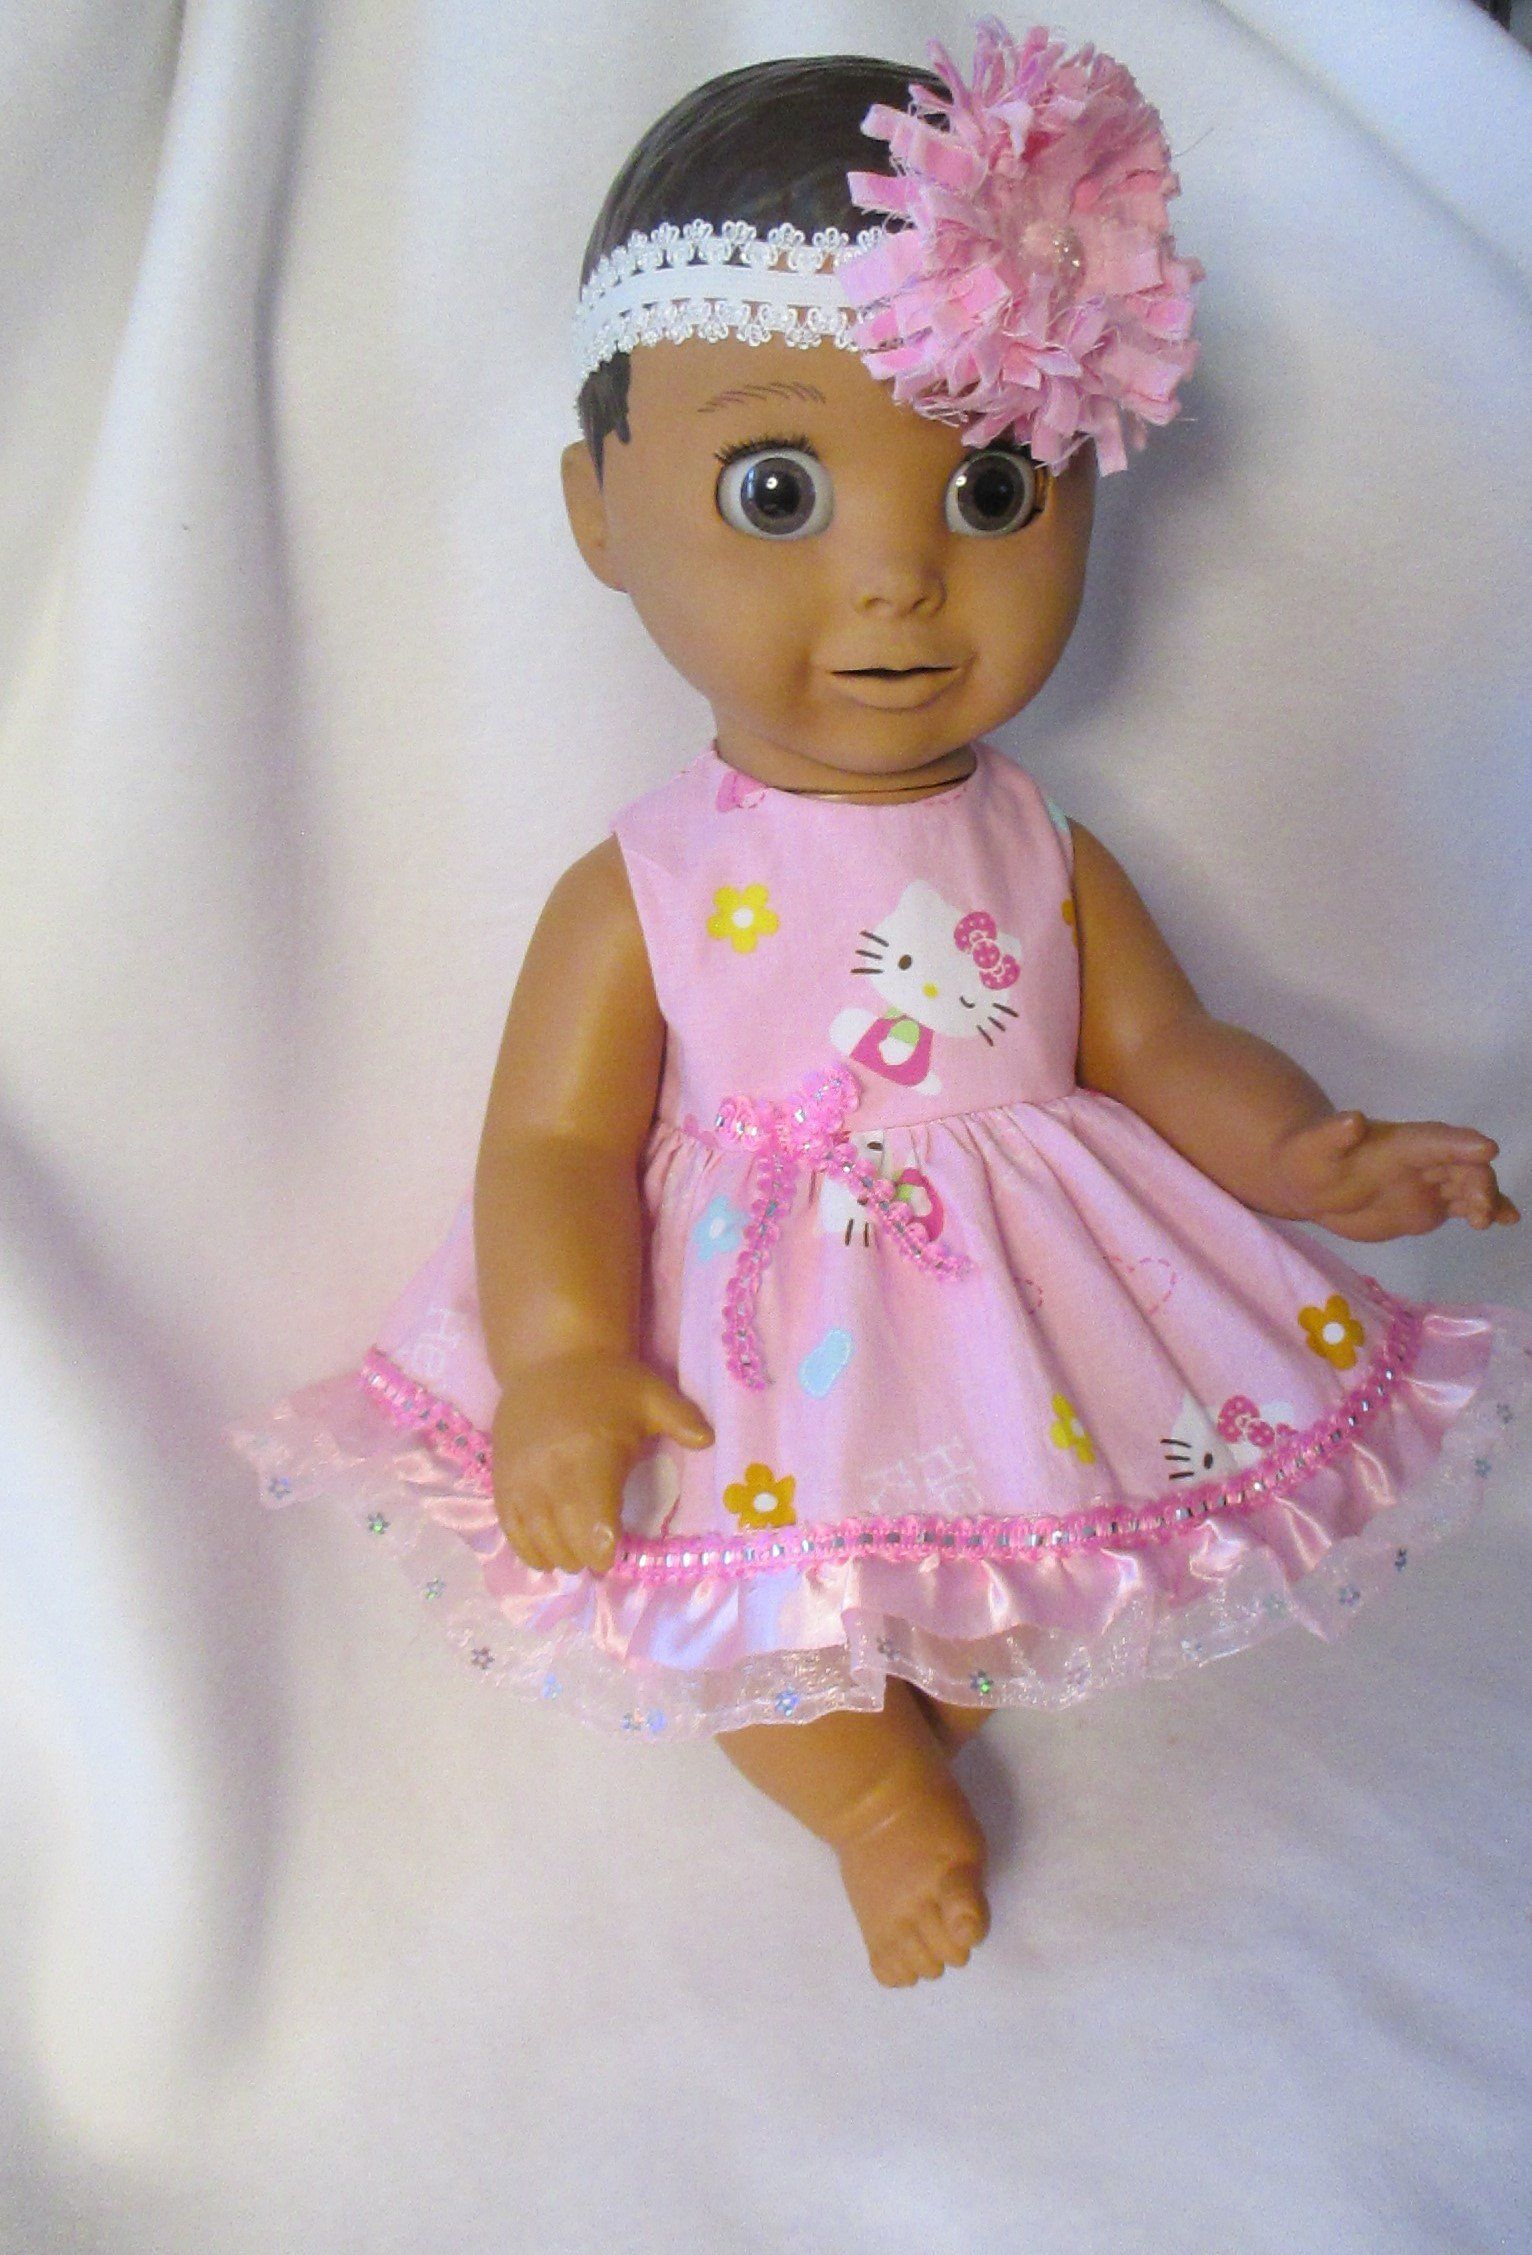 4720d5dd7 Luvabella Hello Kitty Fancy Boutique style Pink Sparkle Dress & Headband 2  Pcs. by Giftsbygammy on Etsy